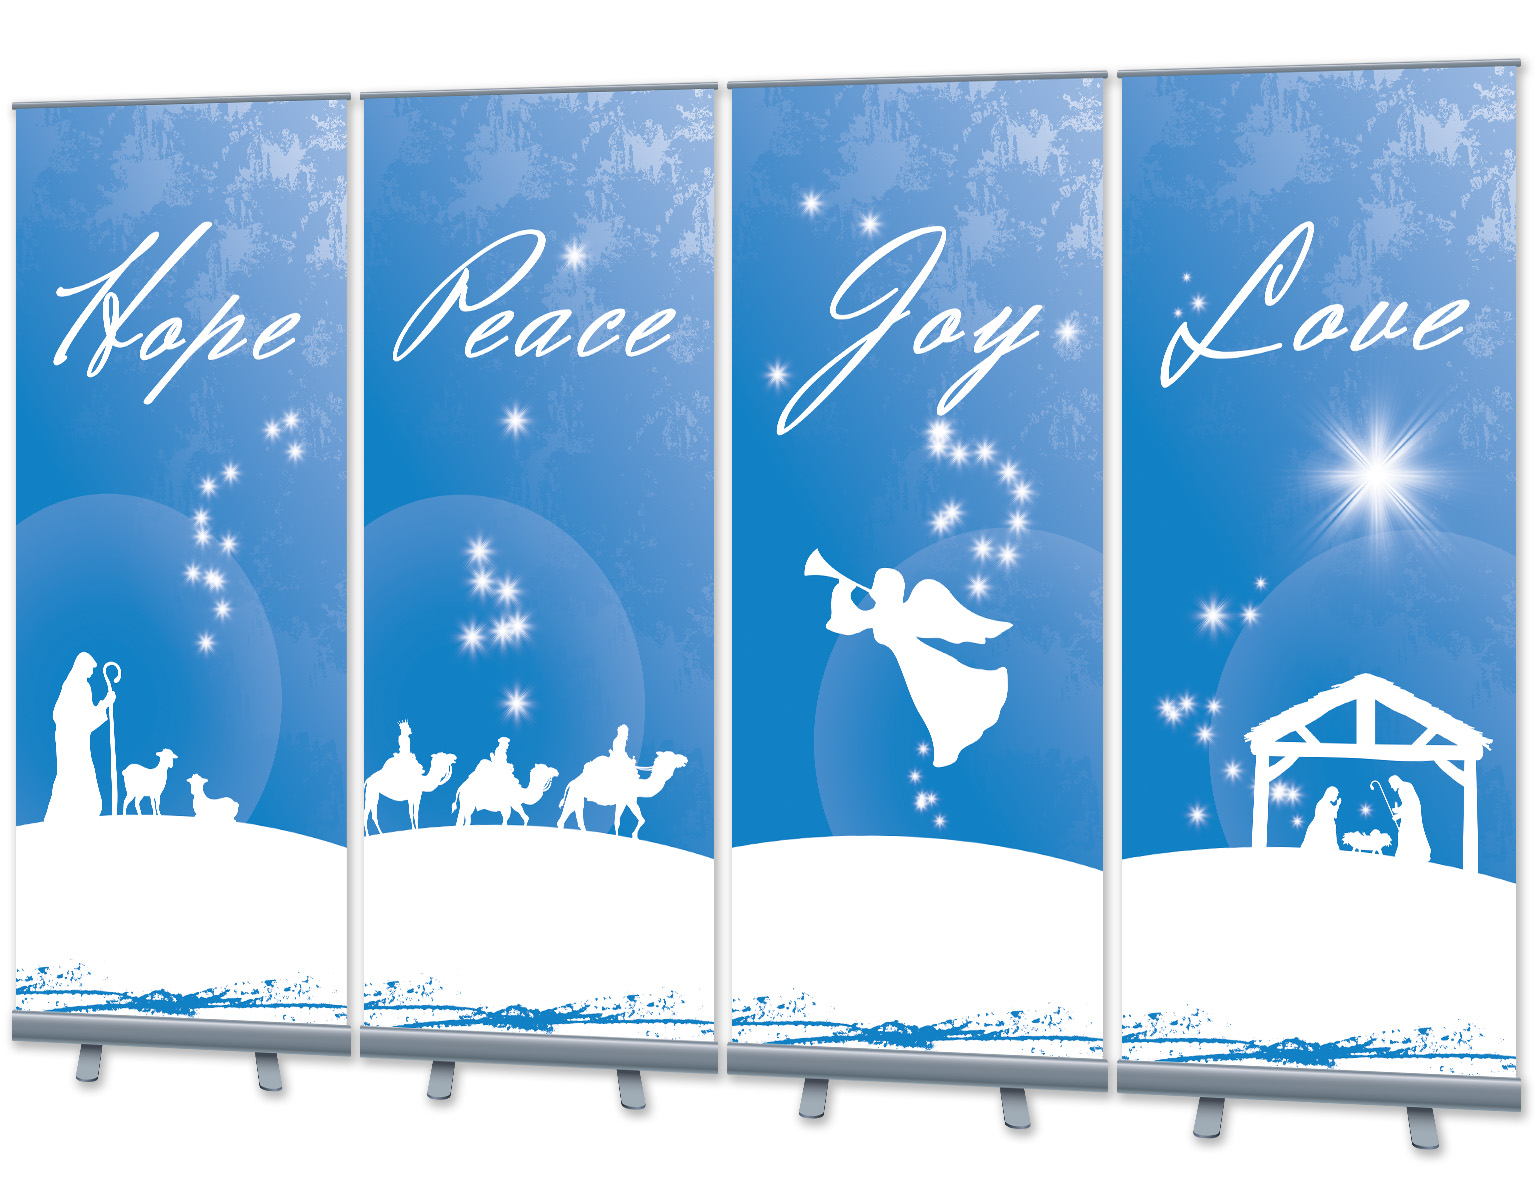 Wholesale Christmas Signage - Banner Stands - Digital Print Solutions